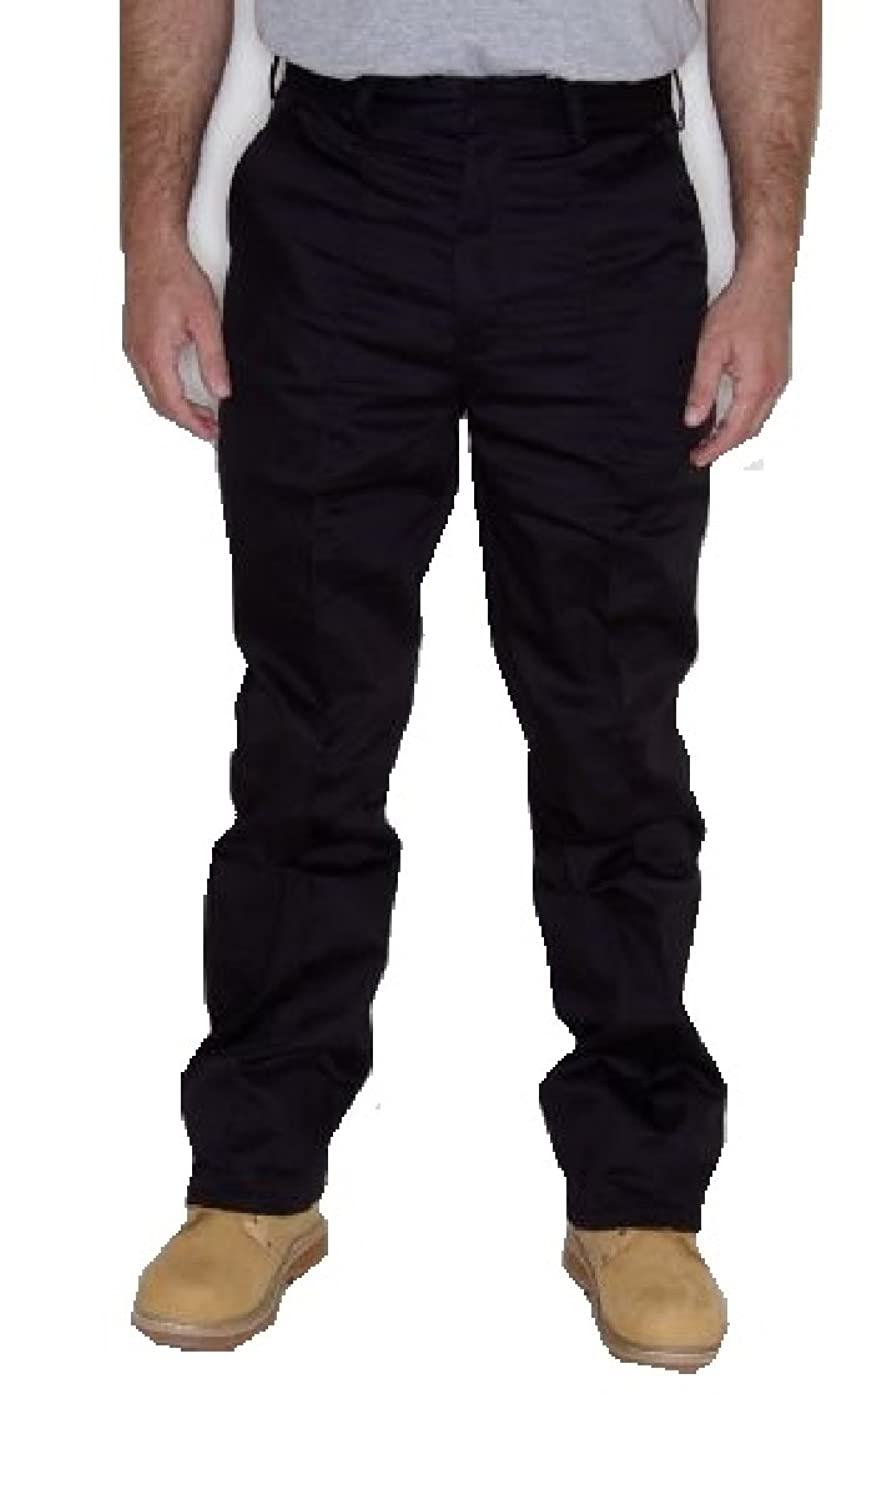 Dickies Redhawk Uniform Trousers Black 46/R